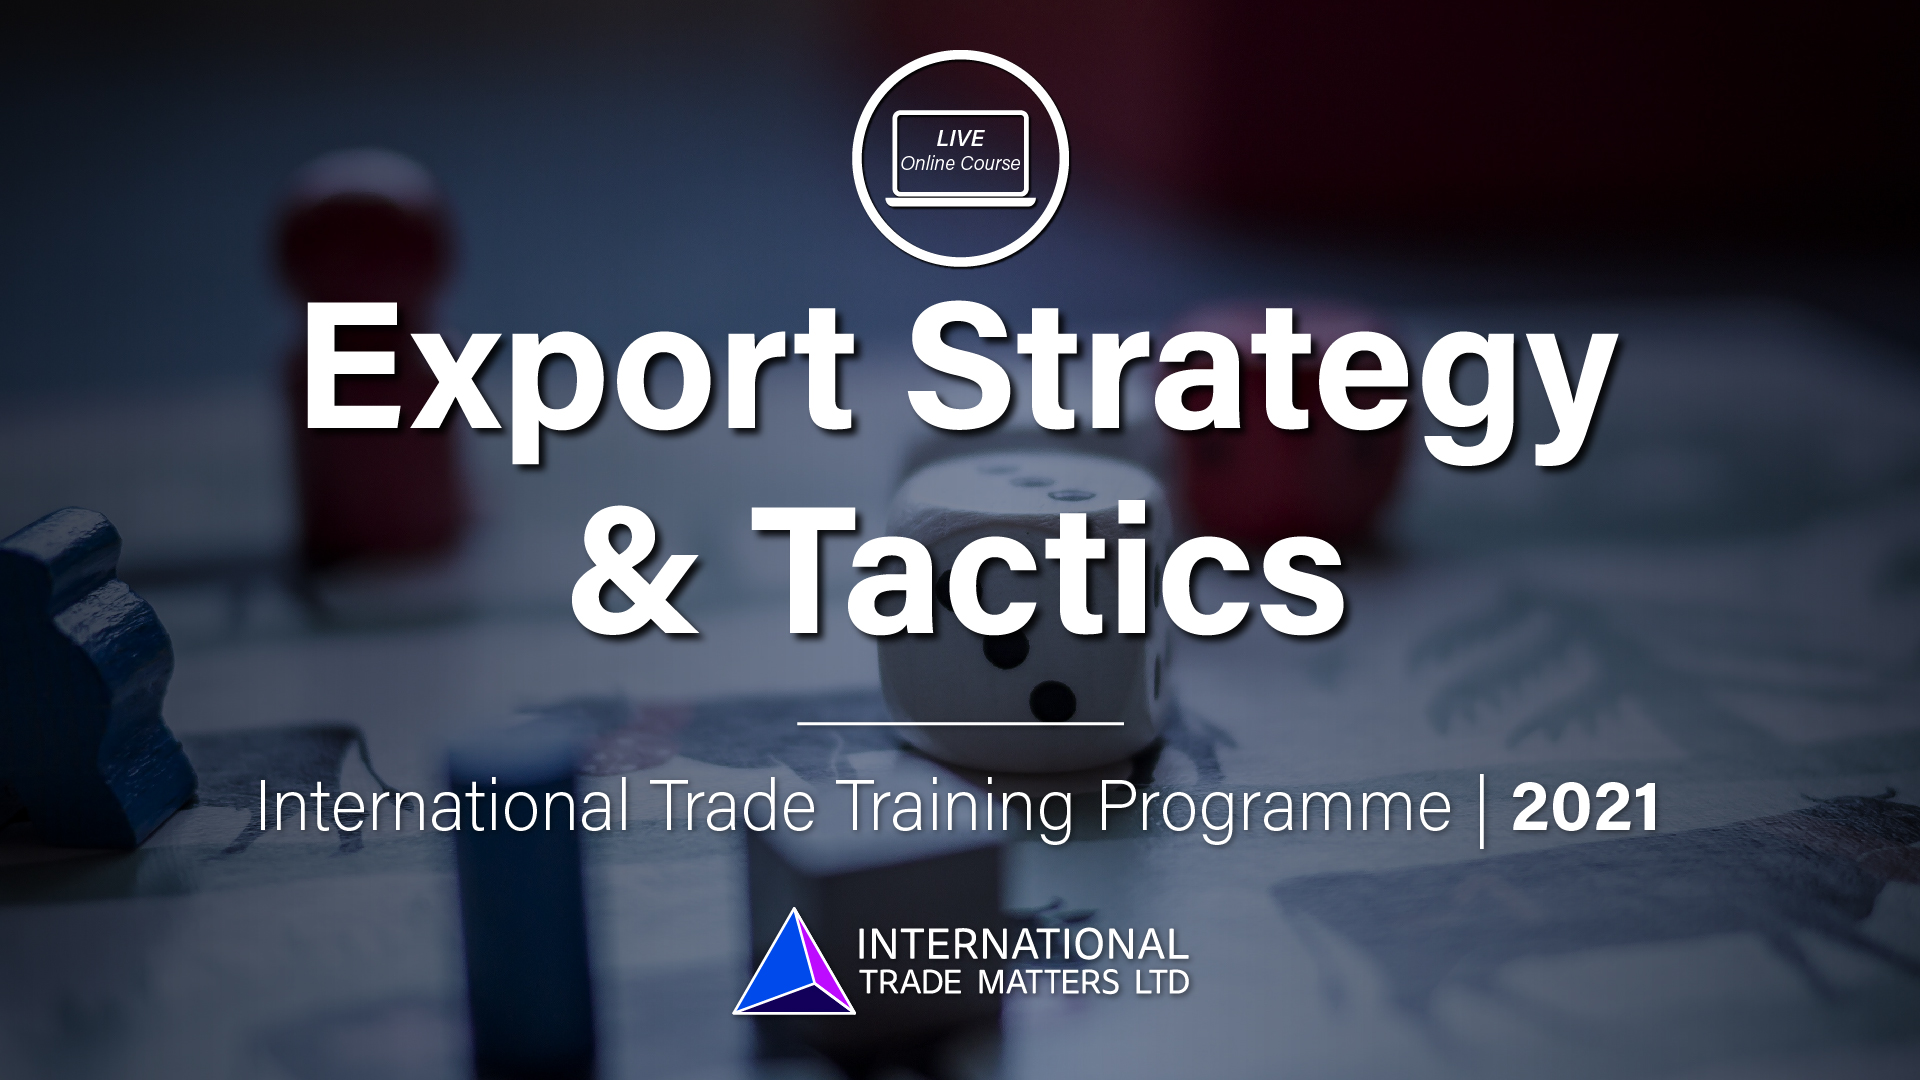 Export Strategy & Tactics – An Online Course